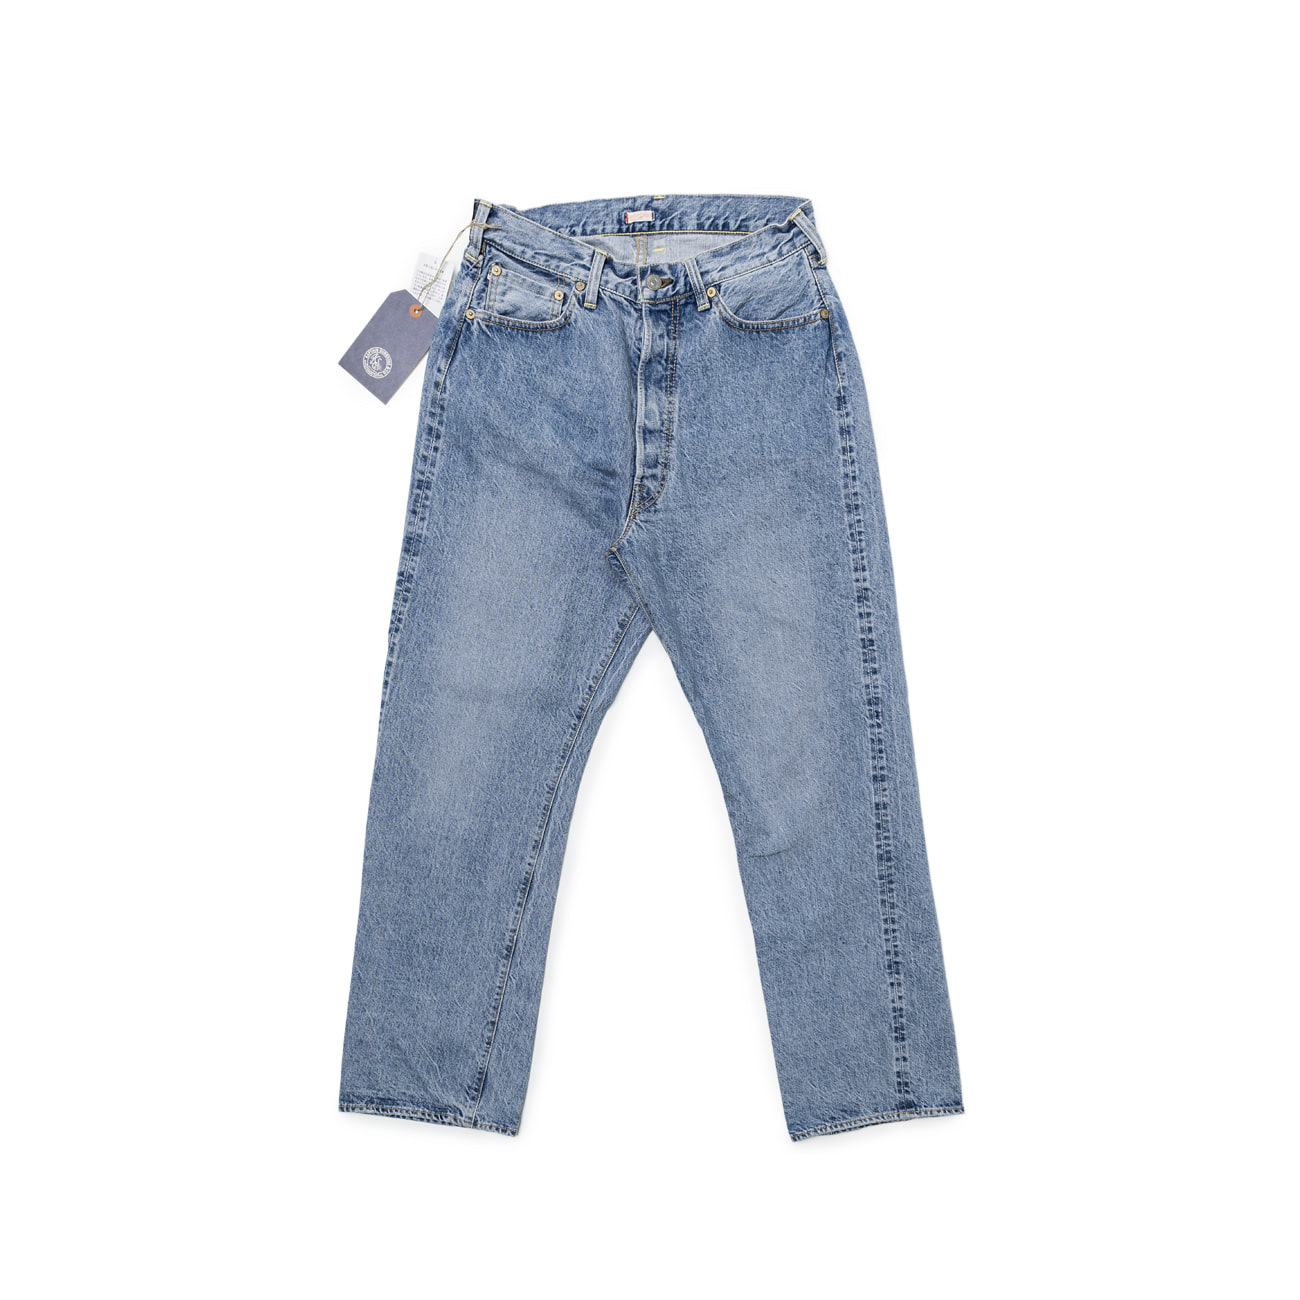 Baggy Cut Straight Denim Pants (Washed)